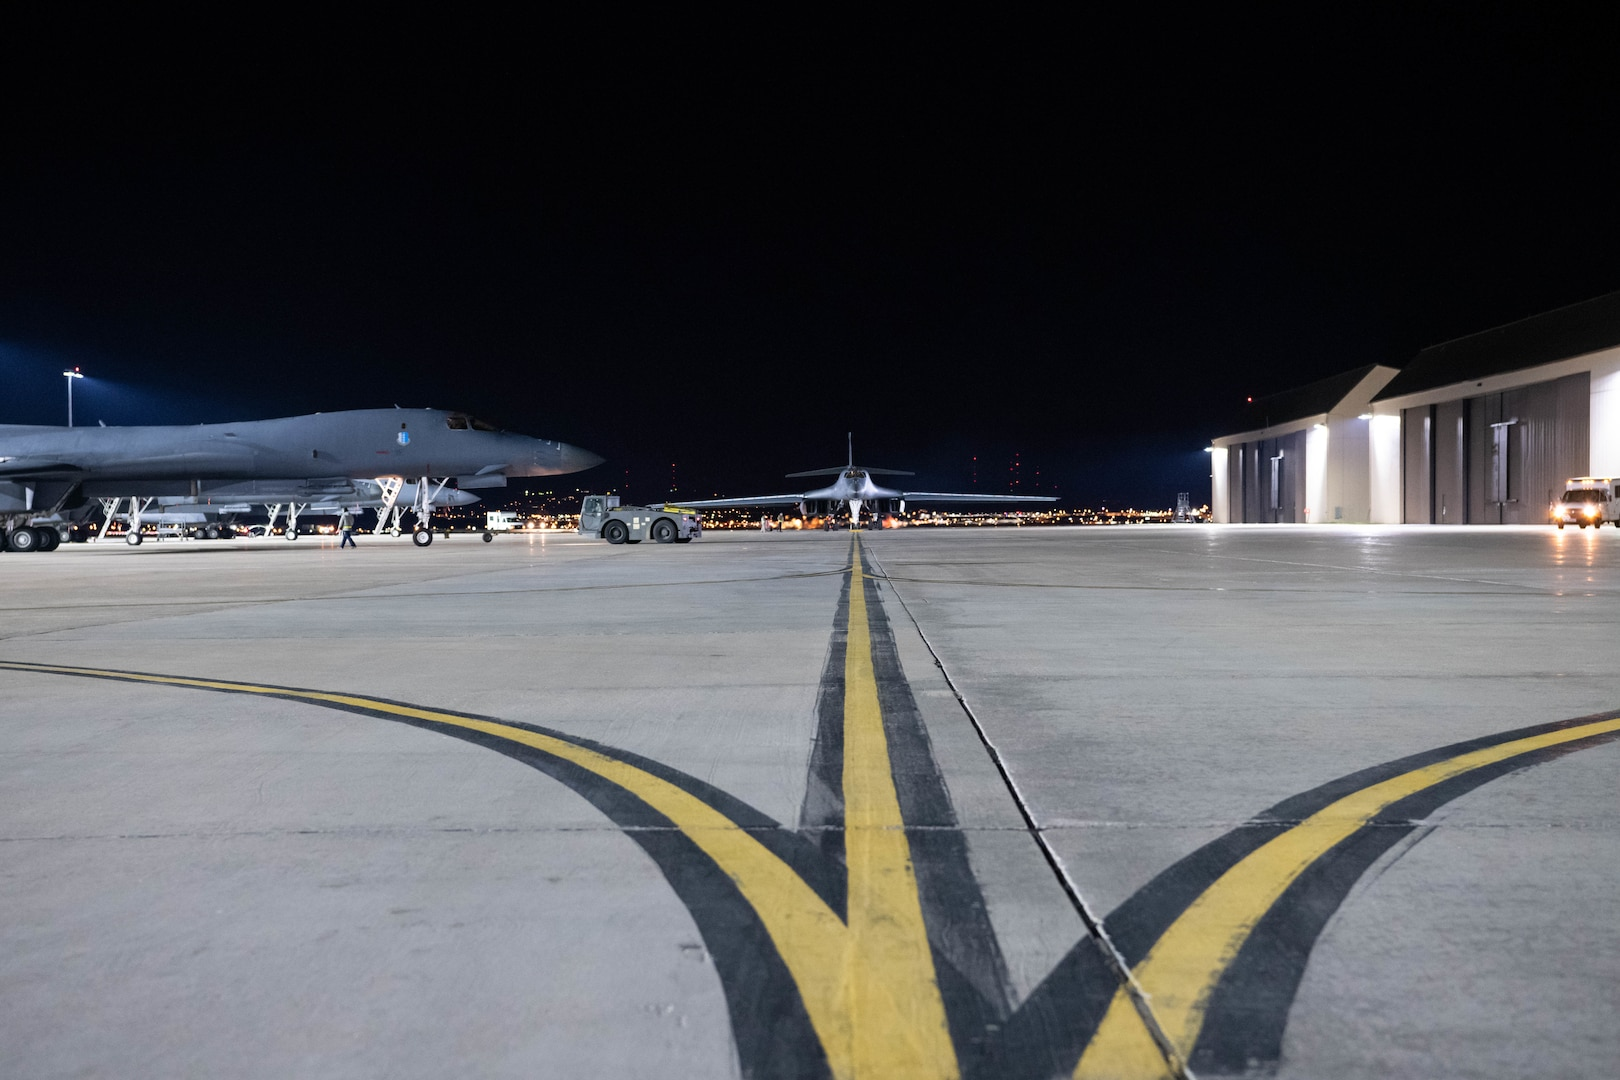 Two B-1B Lancers taxi to their spots on the flight line after landing at Ellsworth Air Force Base, S.D., April 30, 2020. The B-1s, assigned to the 28th Bomb Wing, flew a 32-hour round-trip sortie to conduct operations over the South China Sea as part of a joint U.S. Indo-Pacific Command and U.S. Strategic Command Bomber Task Force mission. (U.S. Air Force photo by Tech. Sgt. Jette Carr)